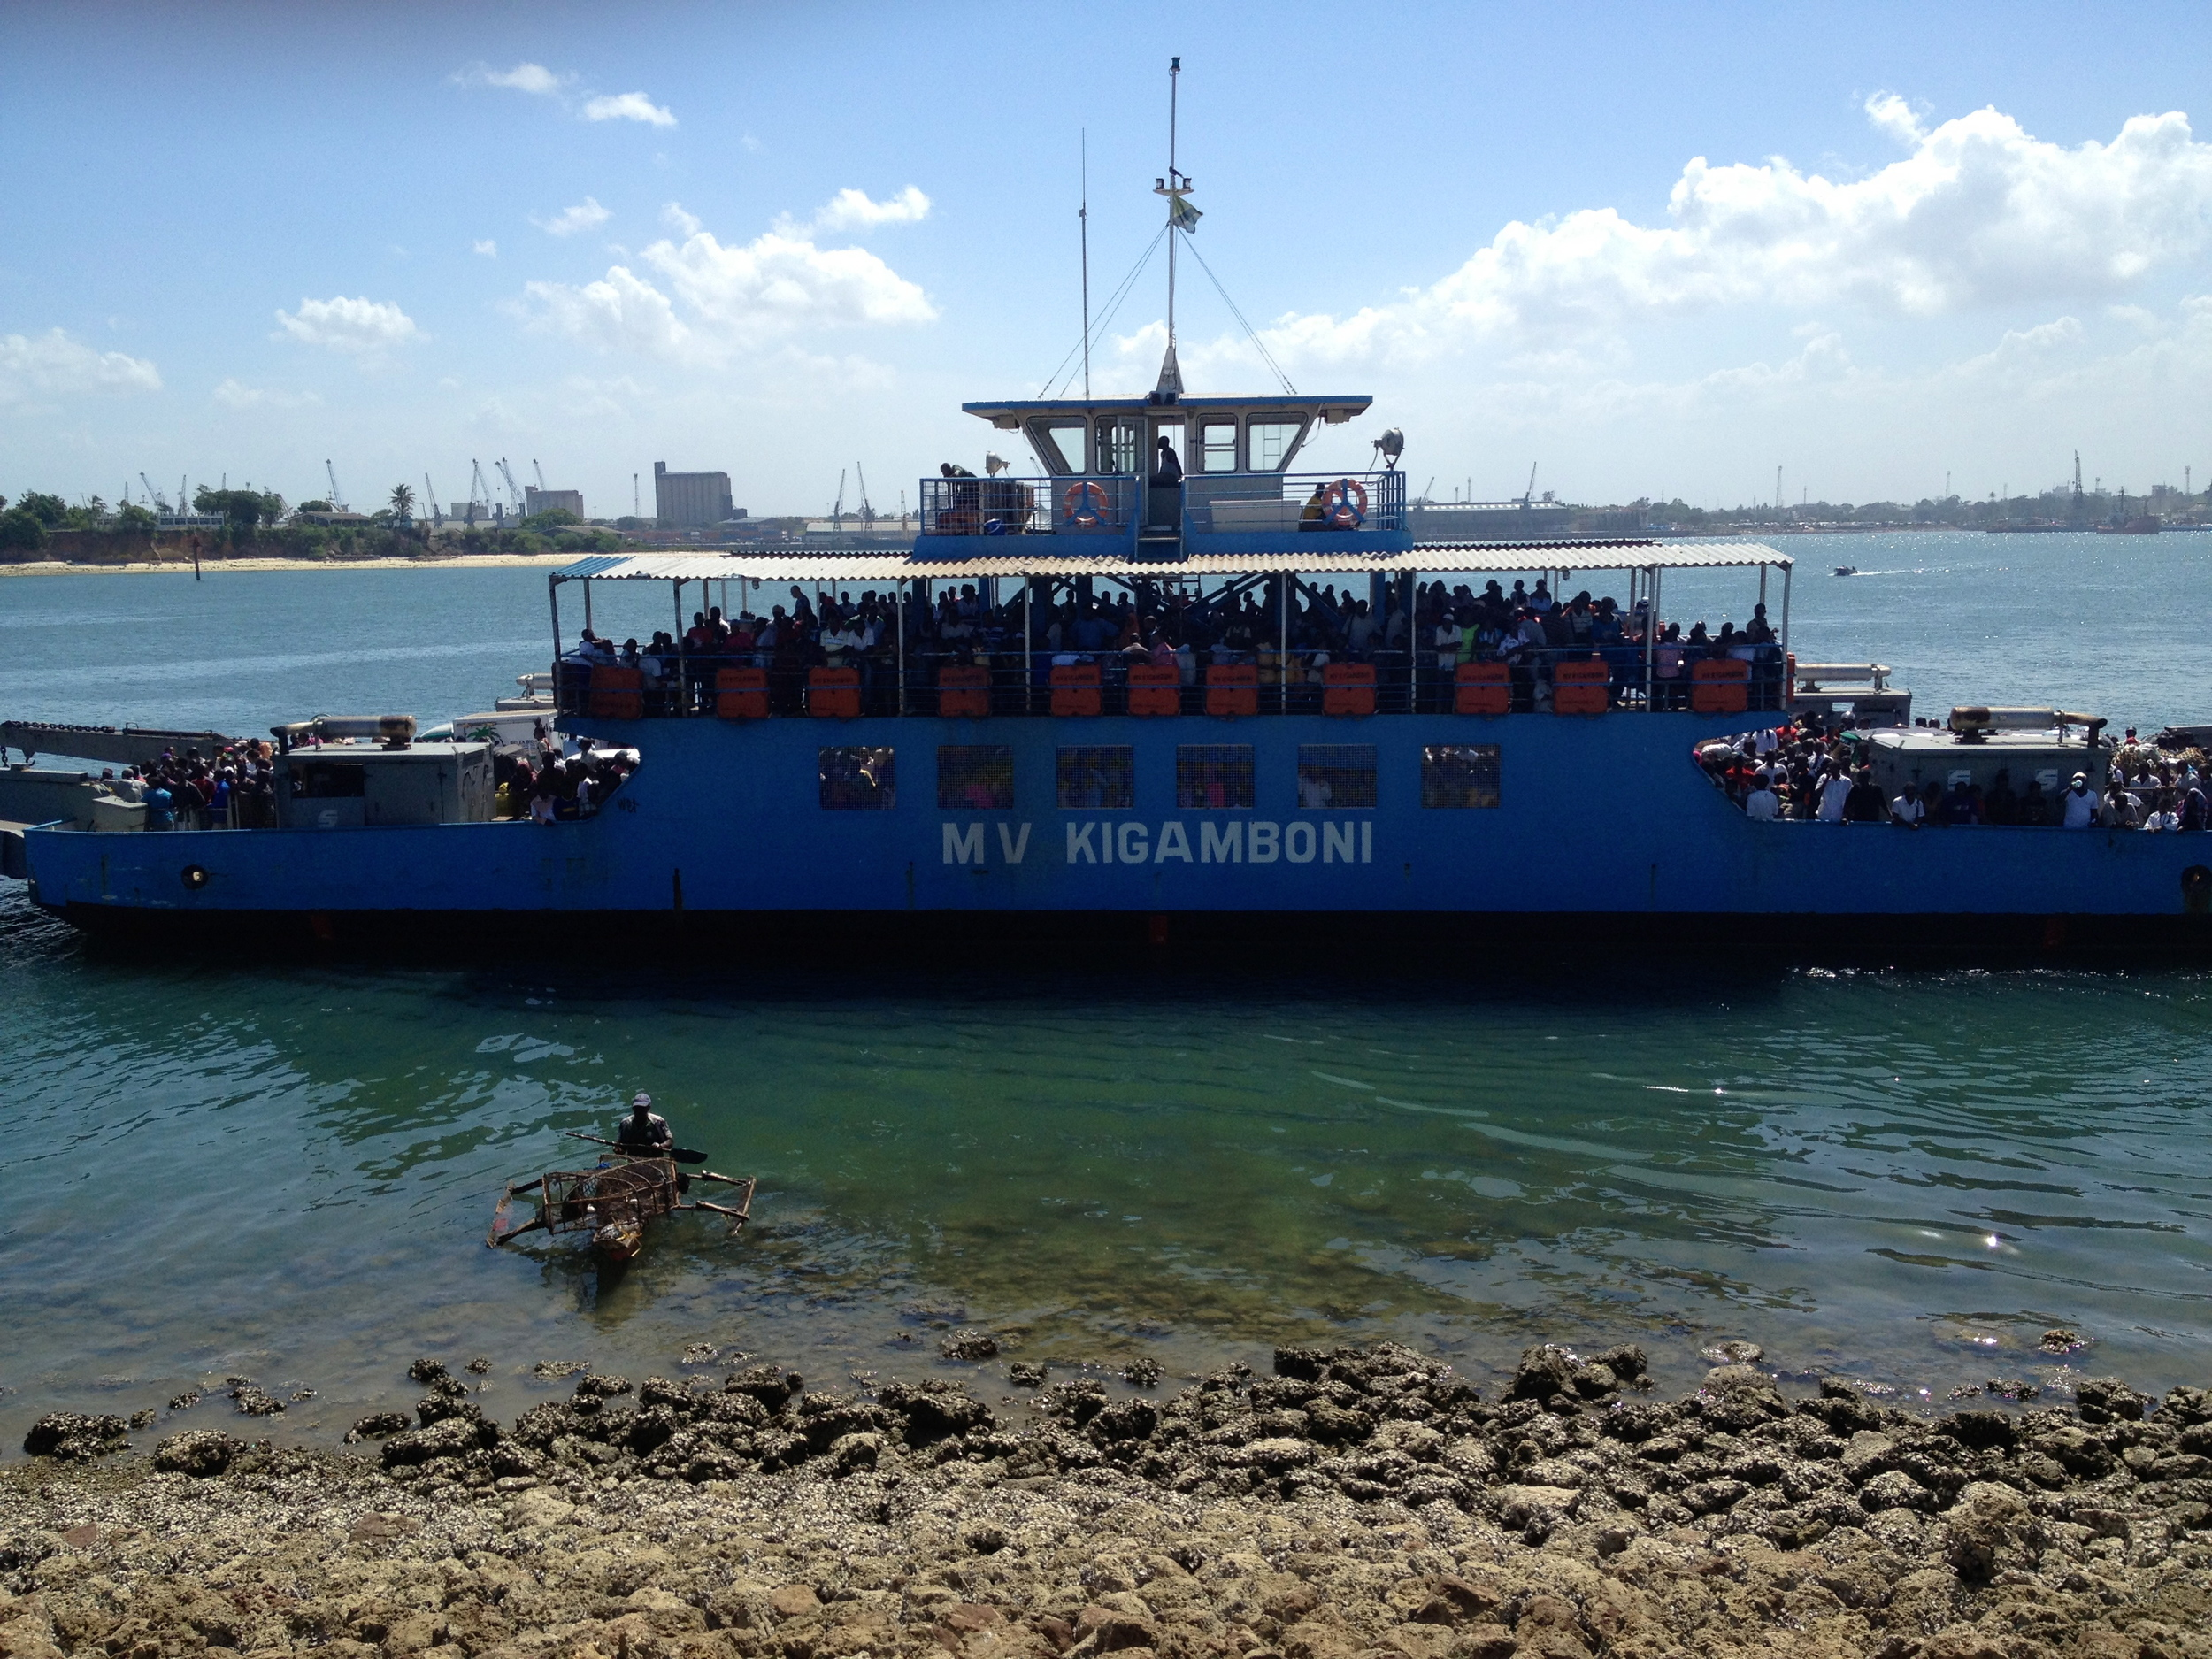 ... even the ferry is crowded   ...